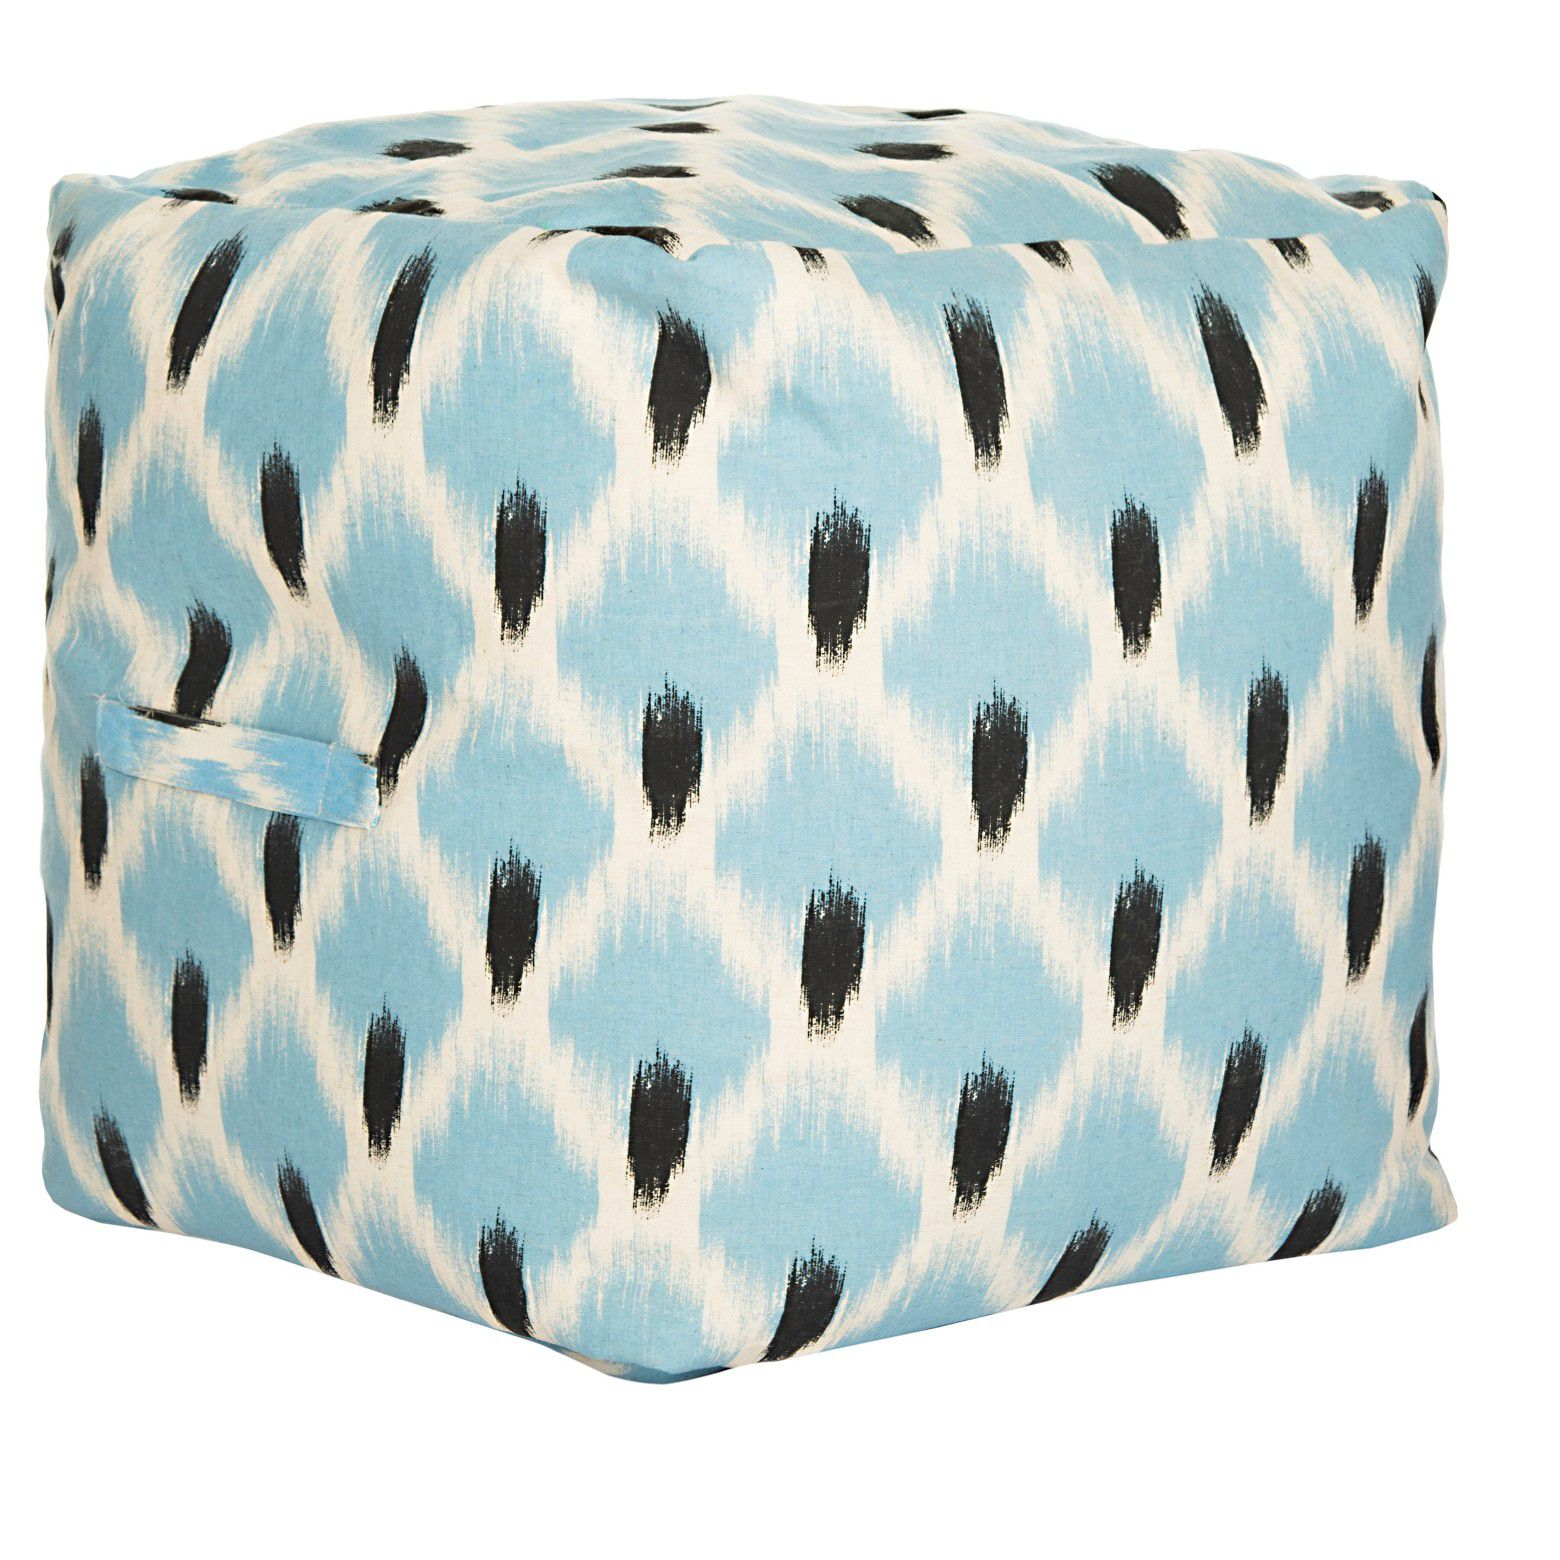 Super The 7 Best Poufs For Your Feet Or Seat Of 2019 Creativecarmelina Interior Chair Design Creativecarmelinacom